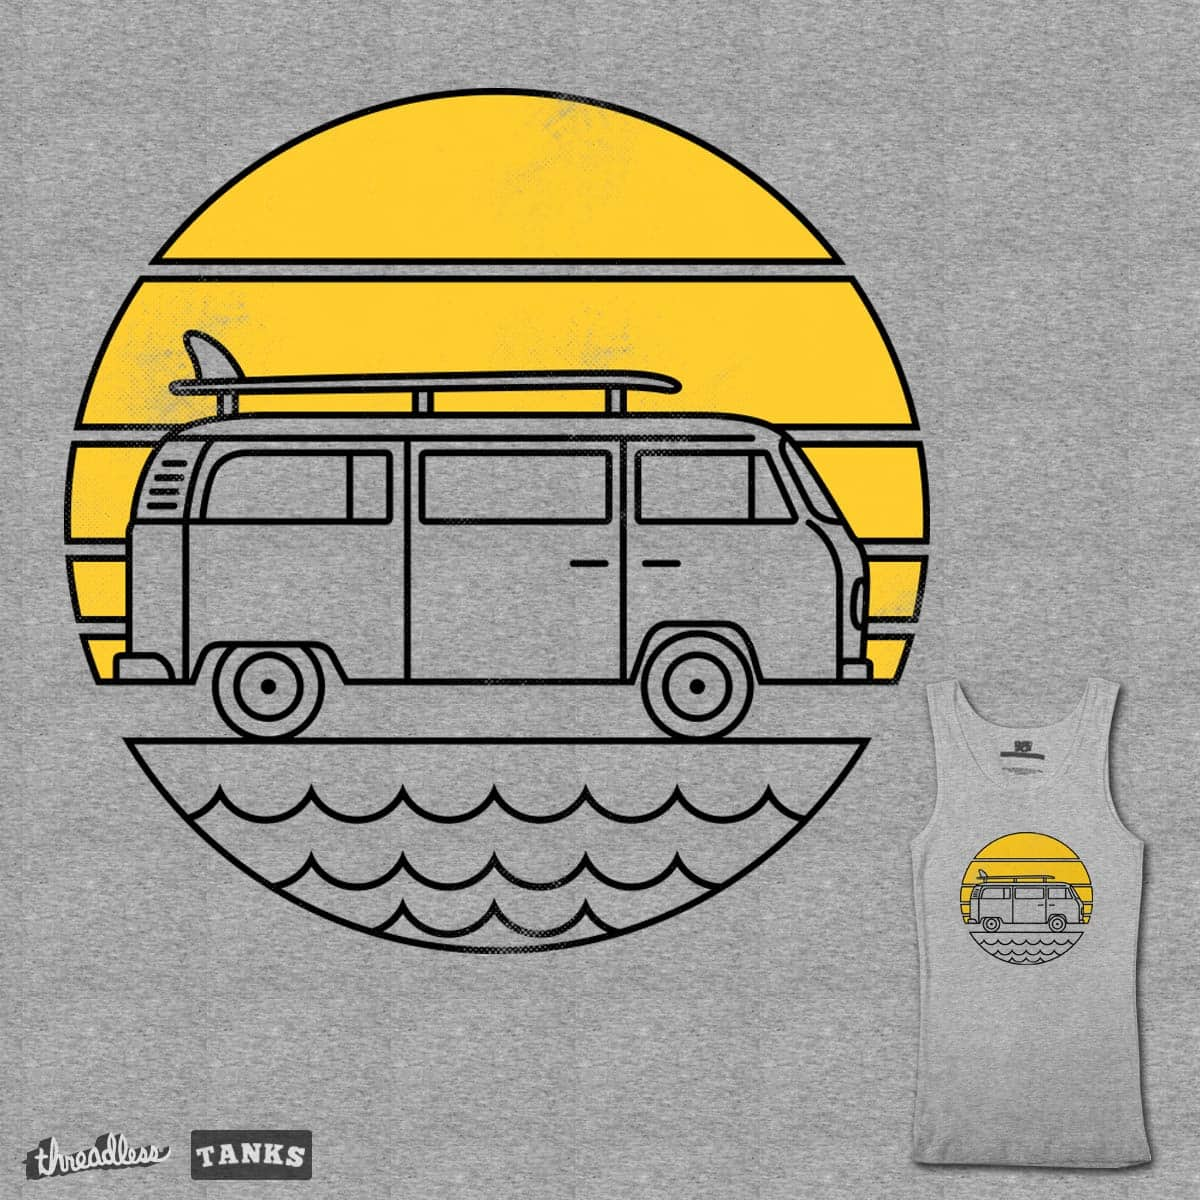 ROAD TRIP by alfbocreative on Threadless